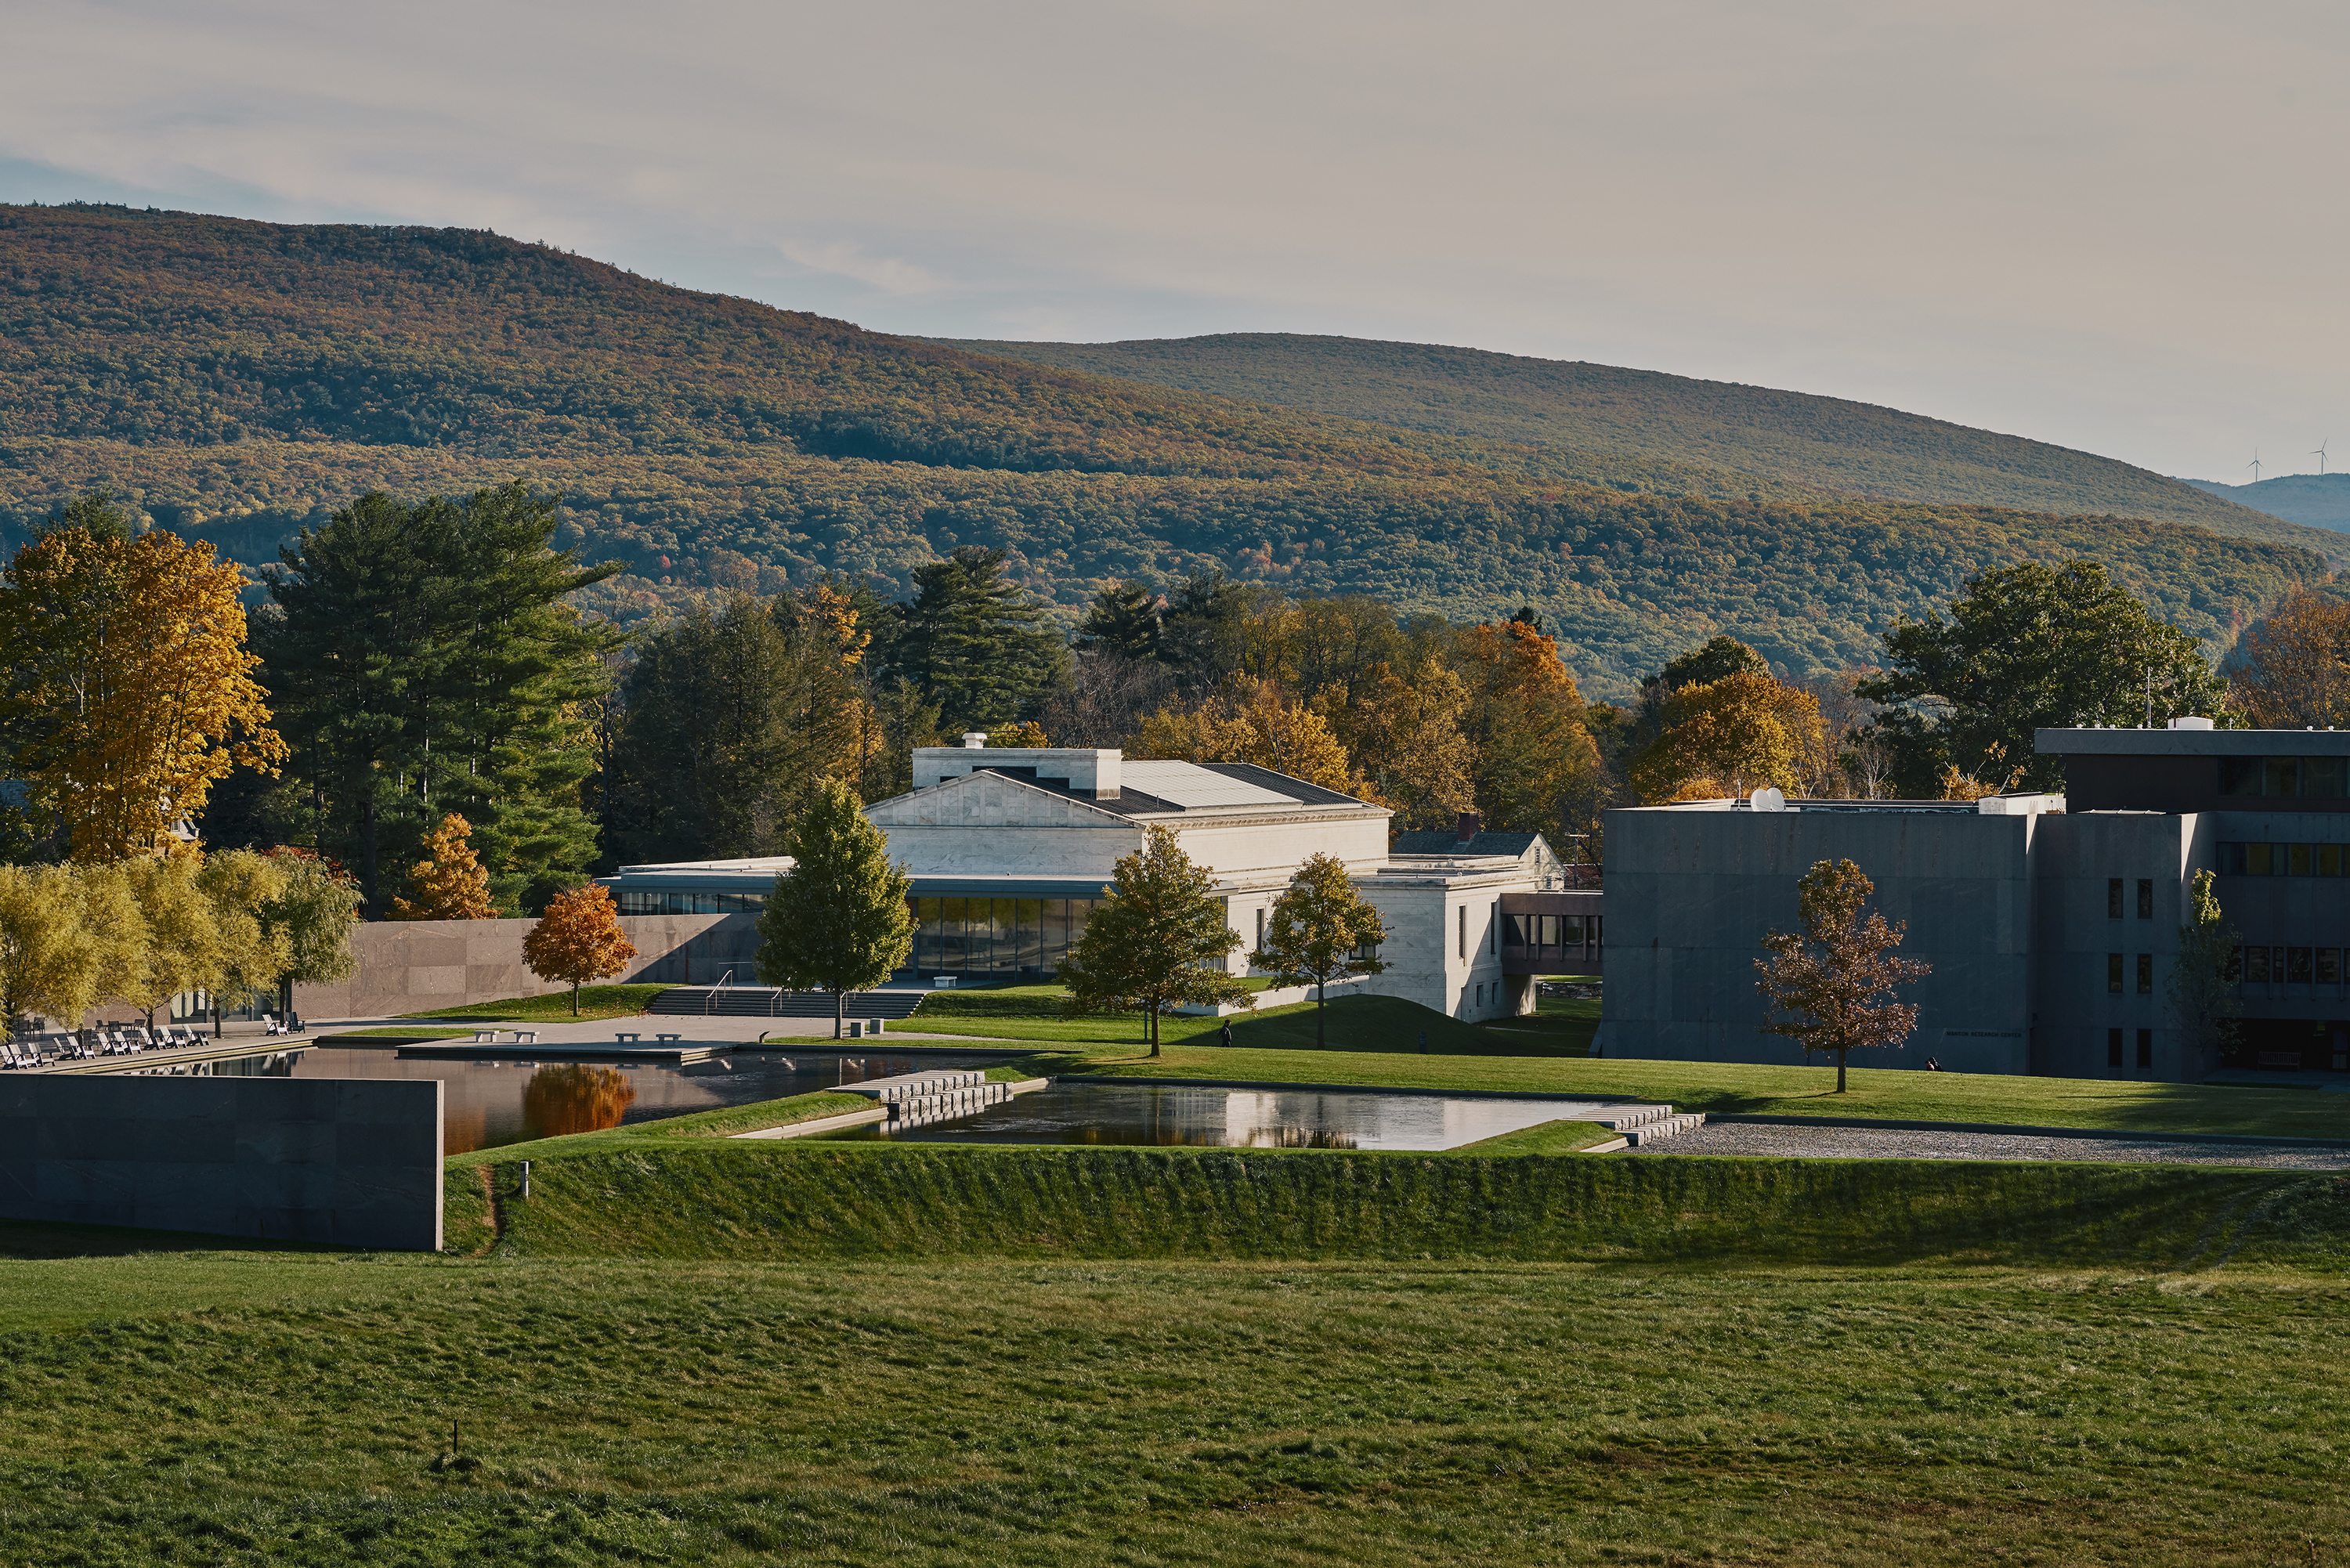 A guide to the small towns of Western Massachusetts